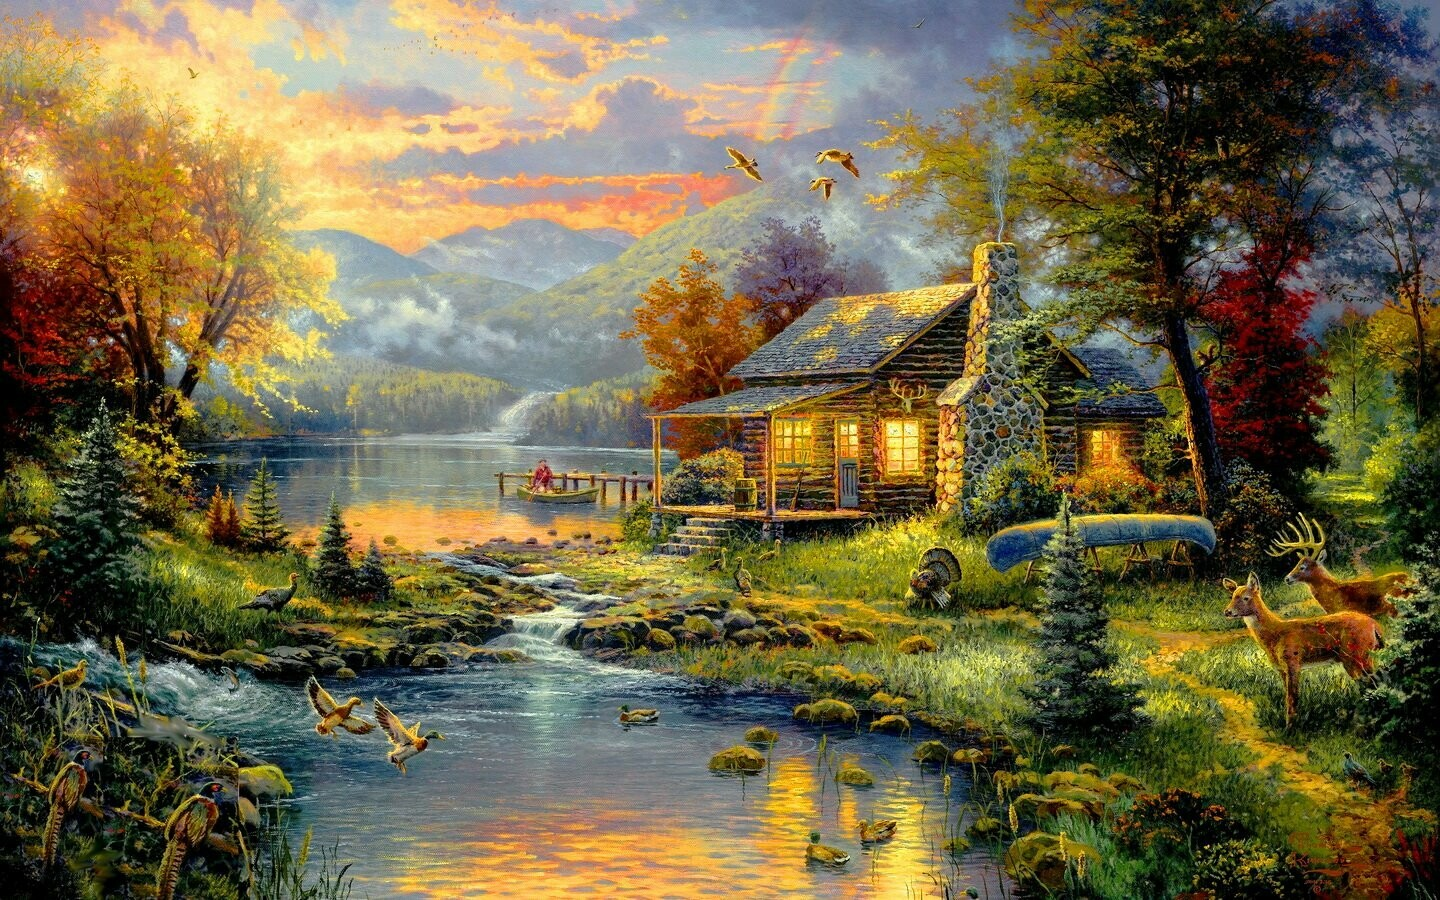 Scenery Artwork 12 - Full Drill Diamond Painting - Specially ordered for you. Delivery is approximately 4 - 6 weeks.